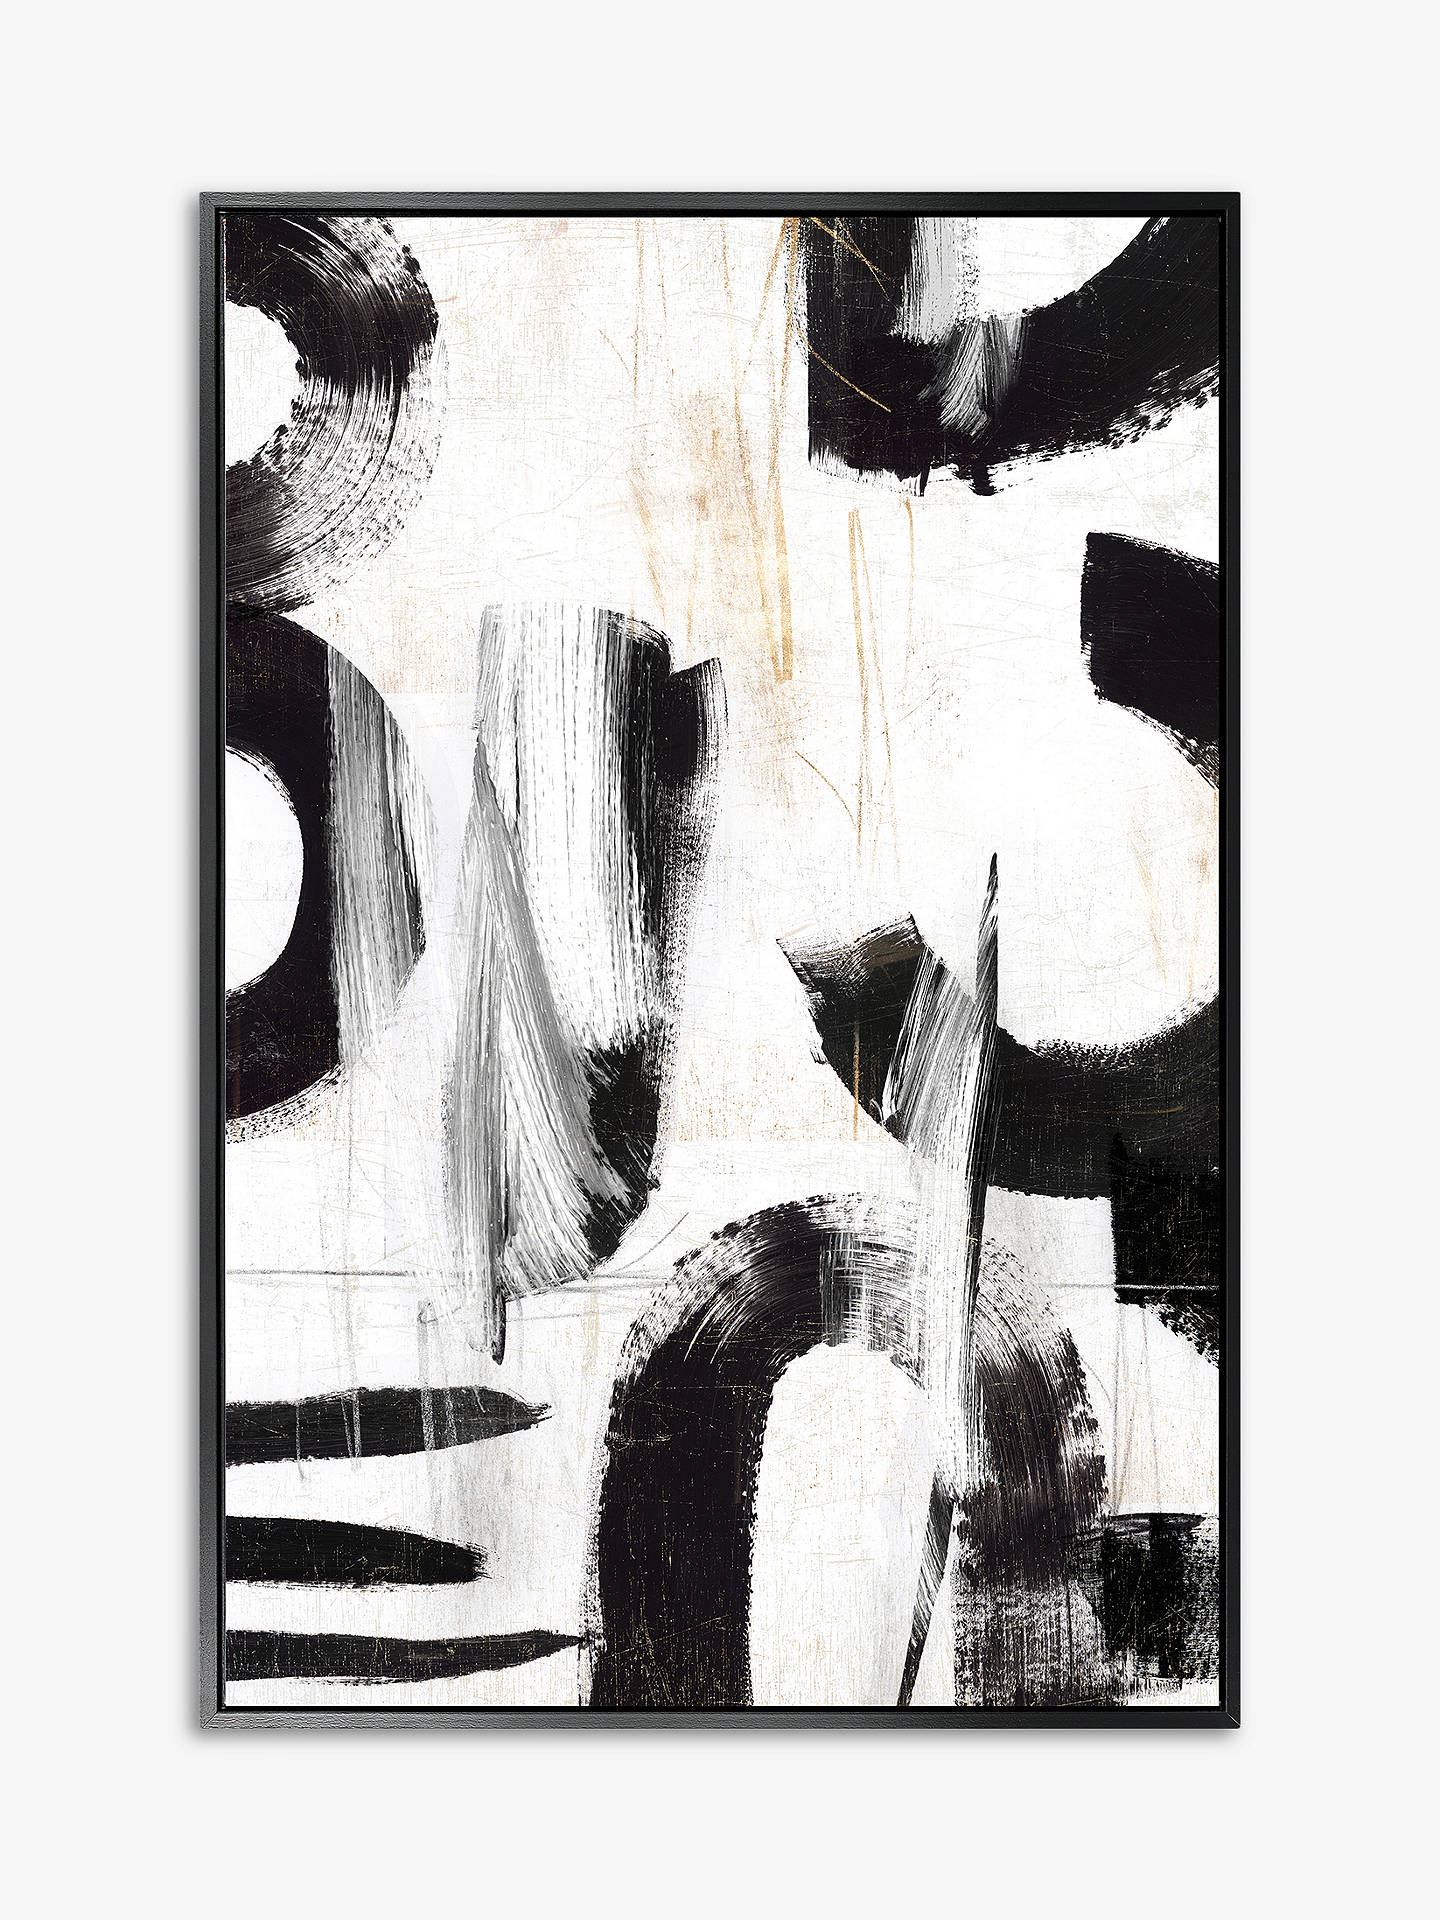 Concept Iii Abstract Framed Canvas Print 124 5 X 84 5cm Black White